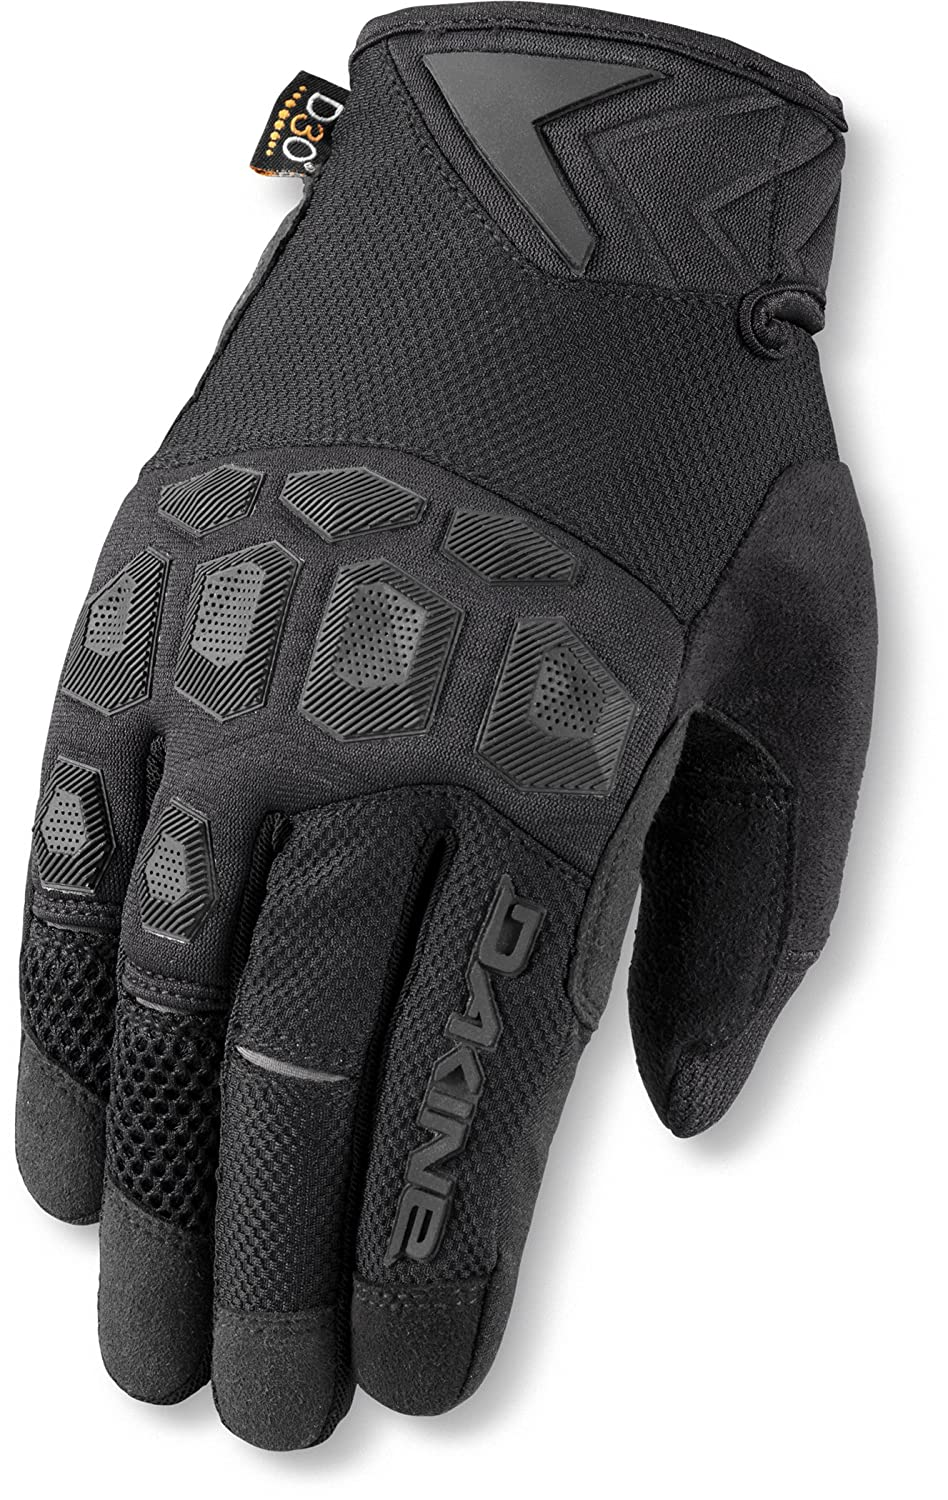 Jrc motorcycle gloves - Jrc Motorcycle Gloves 50